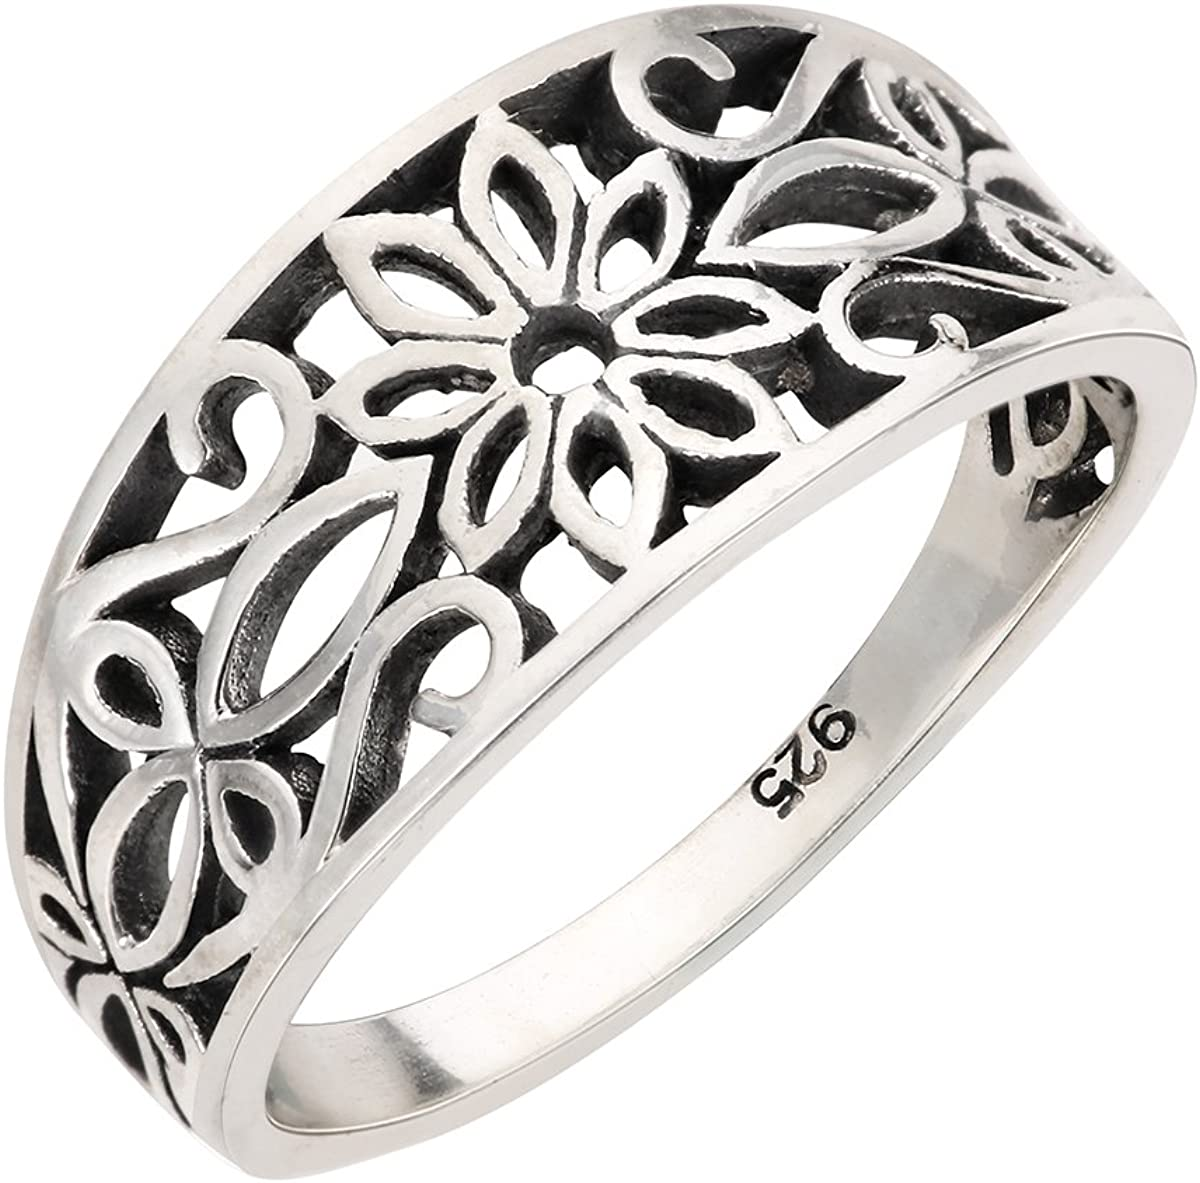 Sterling Many popular brands Silver High material Antique Filigree Design 4-15 Ring Floral Sizes